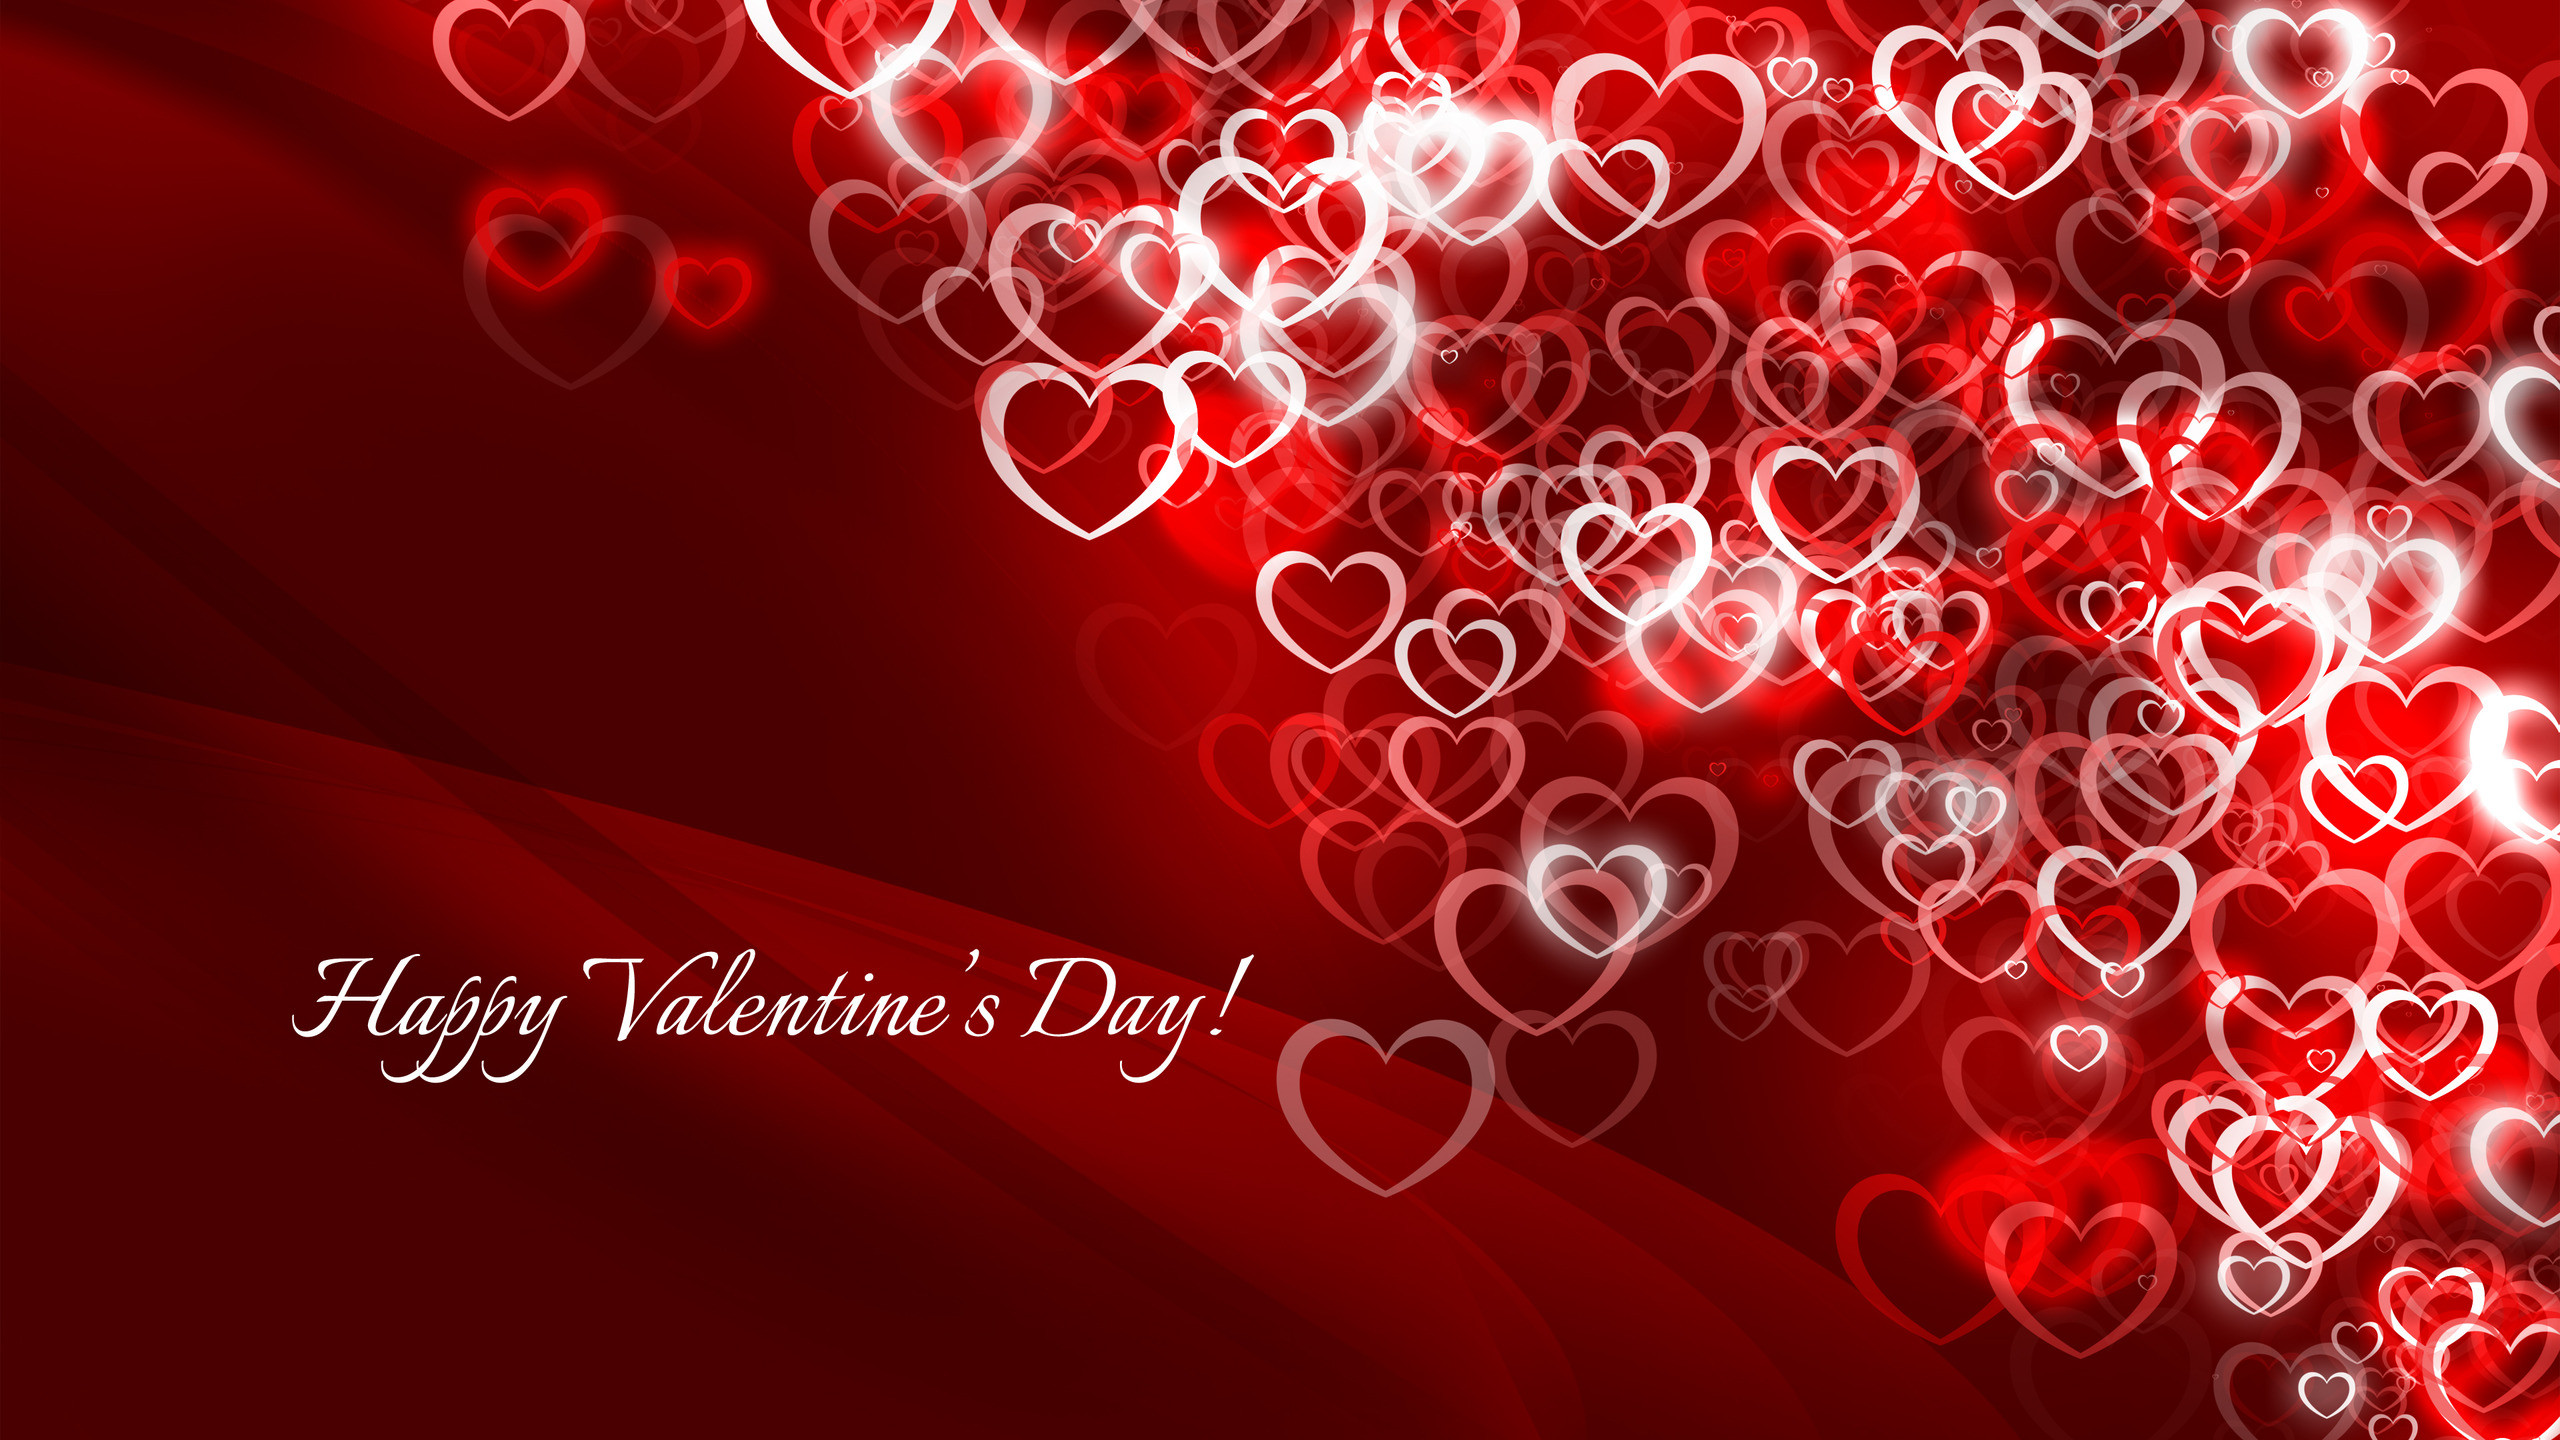 Boy & girl happy valentine day hd wallpaper | Valentines day ideas |  Pinterest